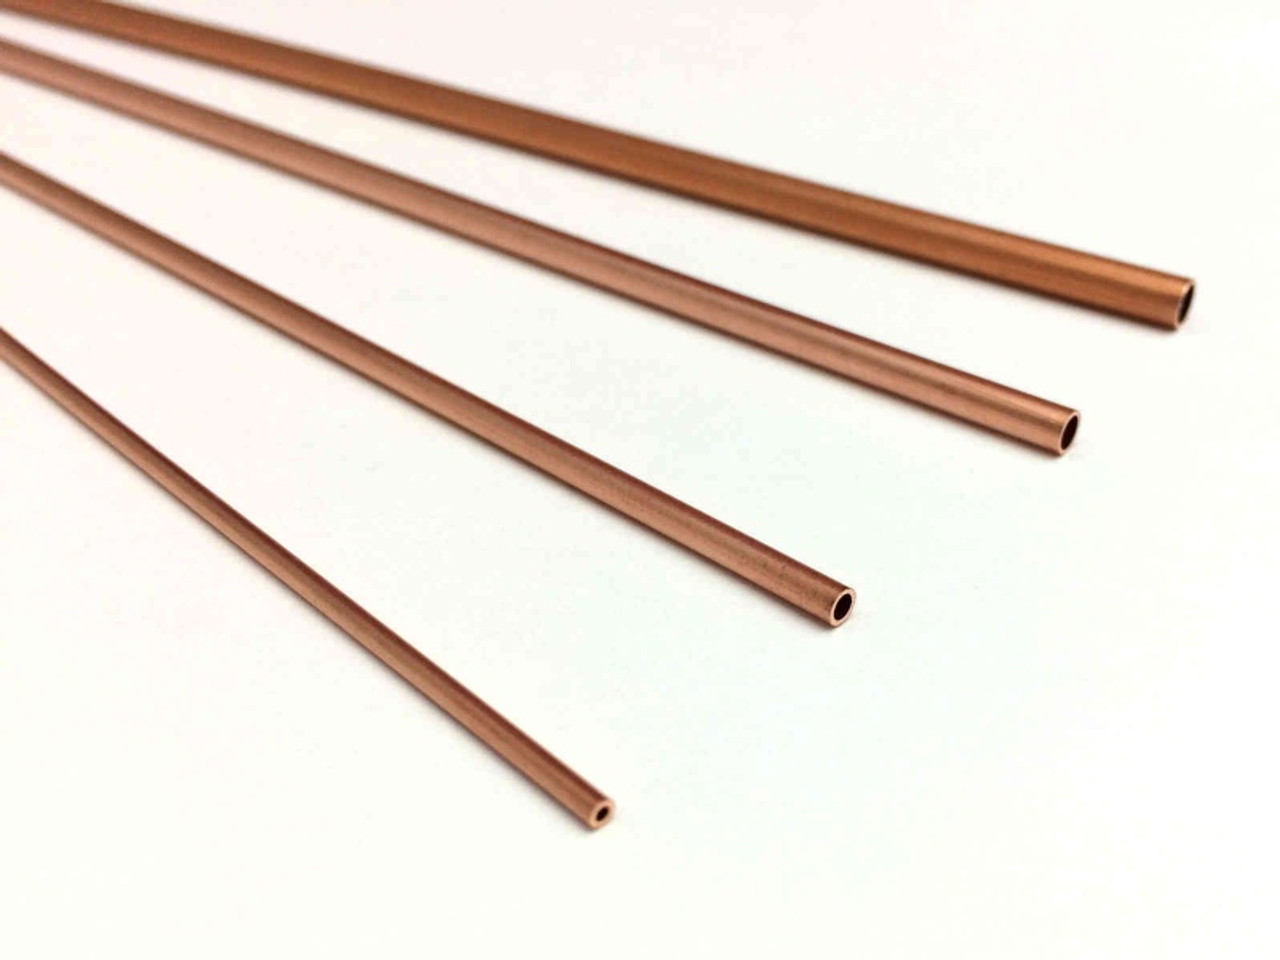 Round Copper Tube 1-16 Inch OD